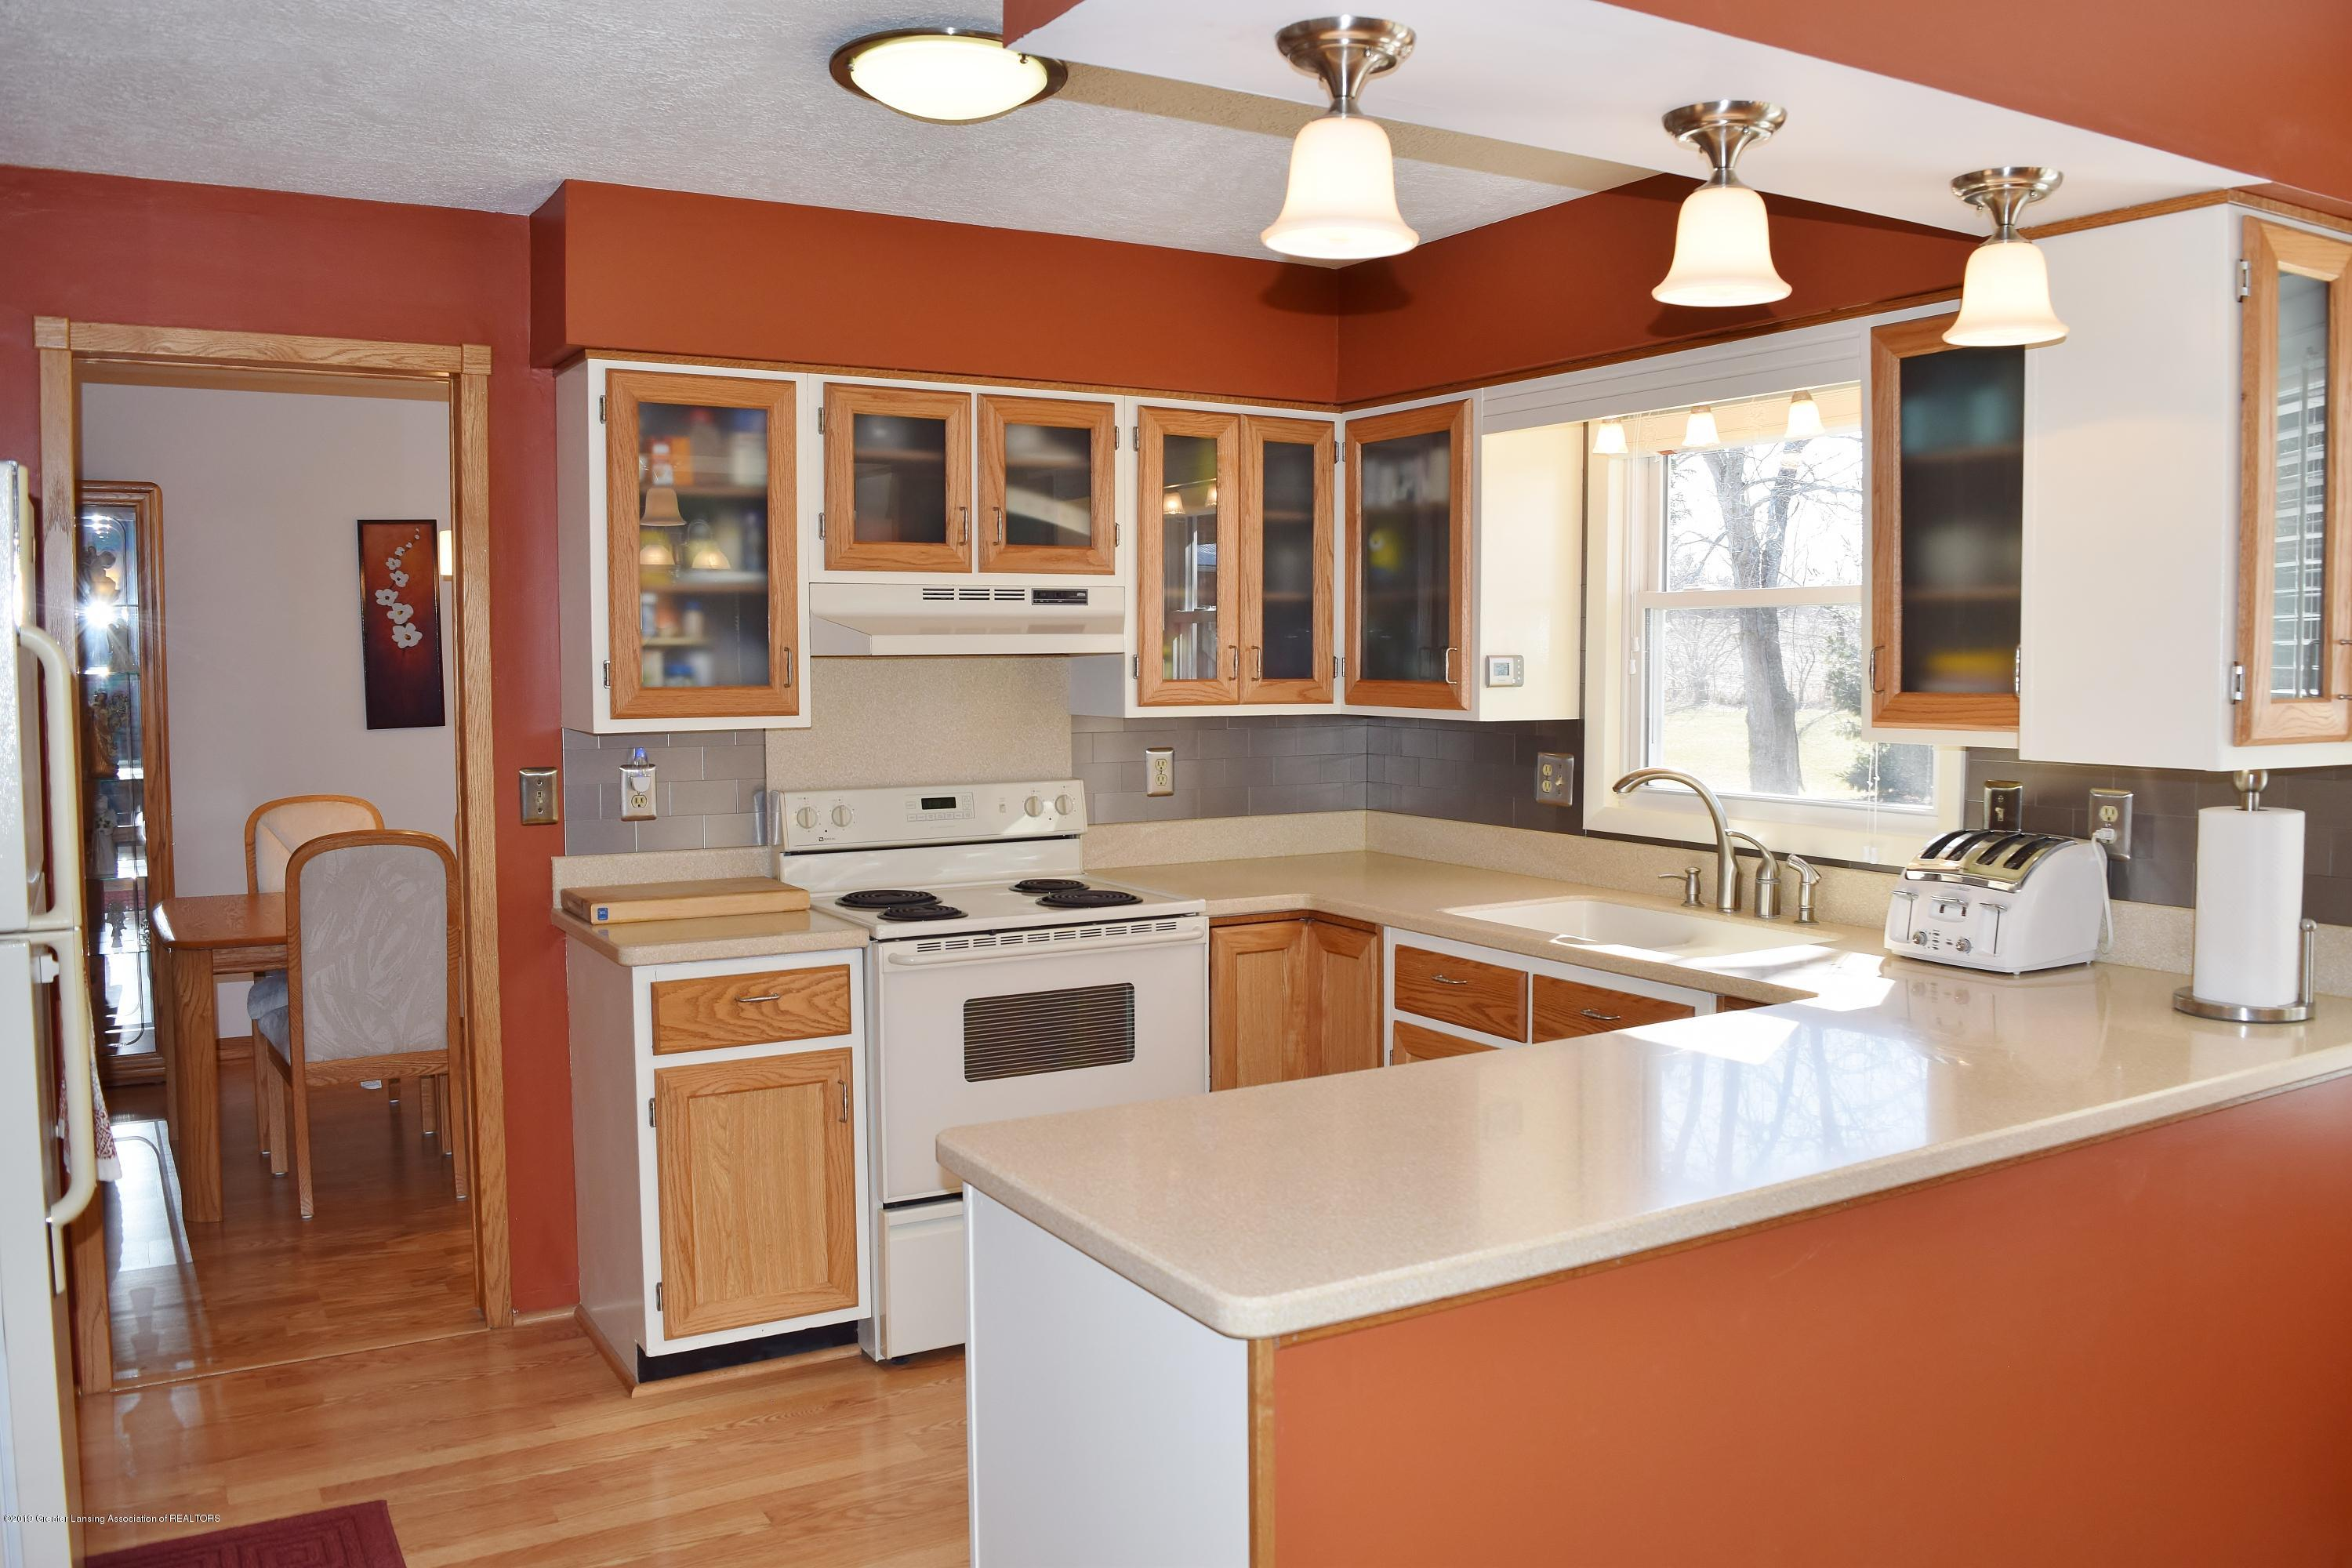 2817 N Gunnell Rd - Kitchen - 16